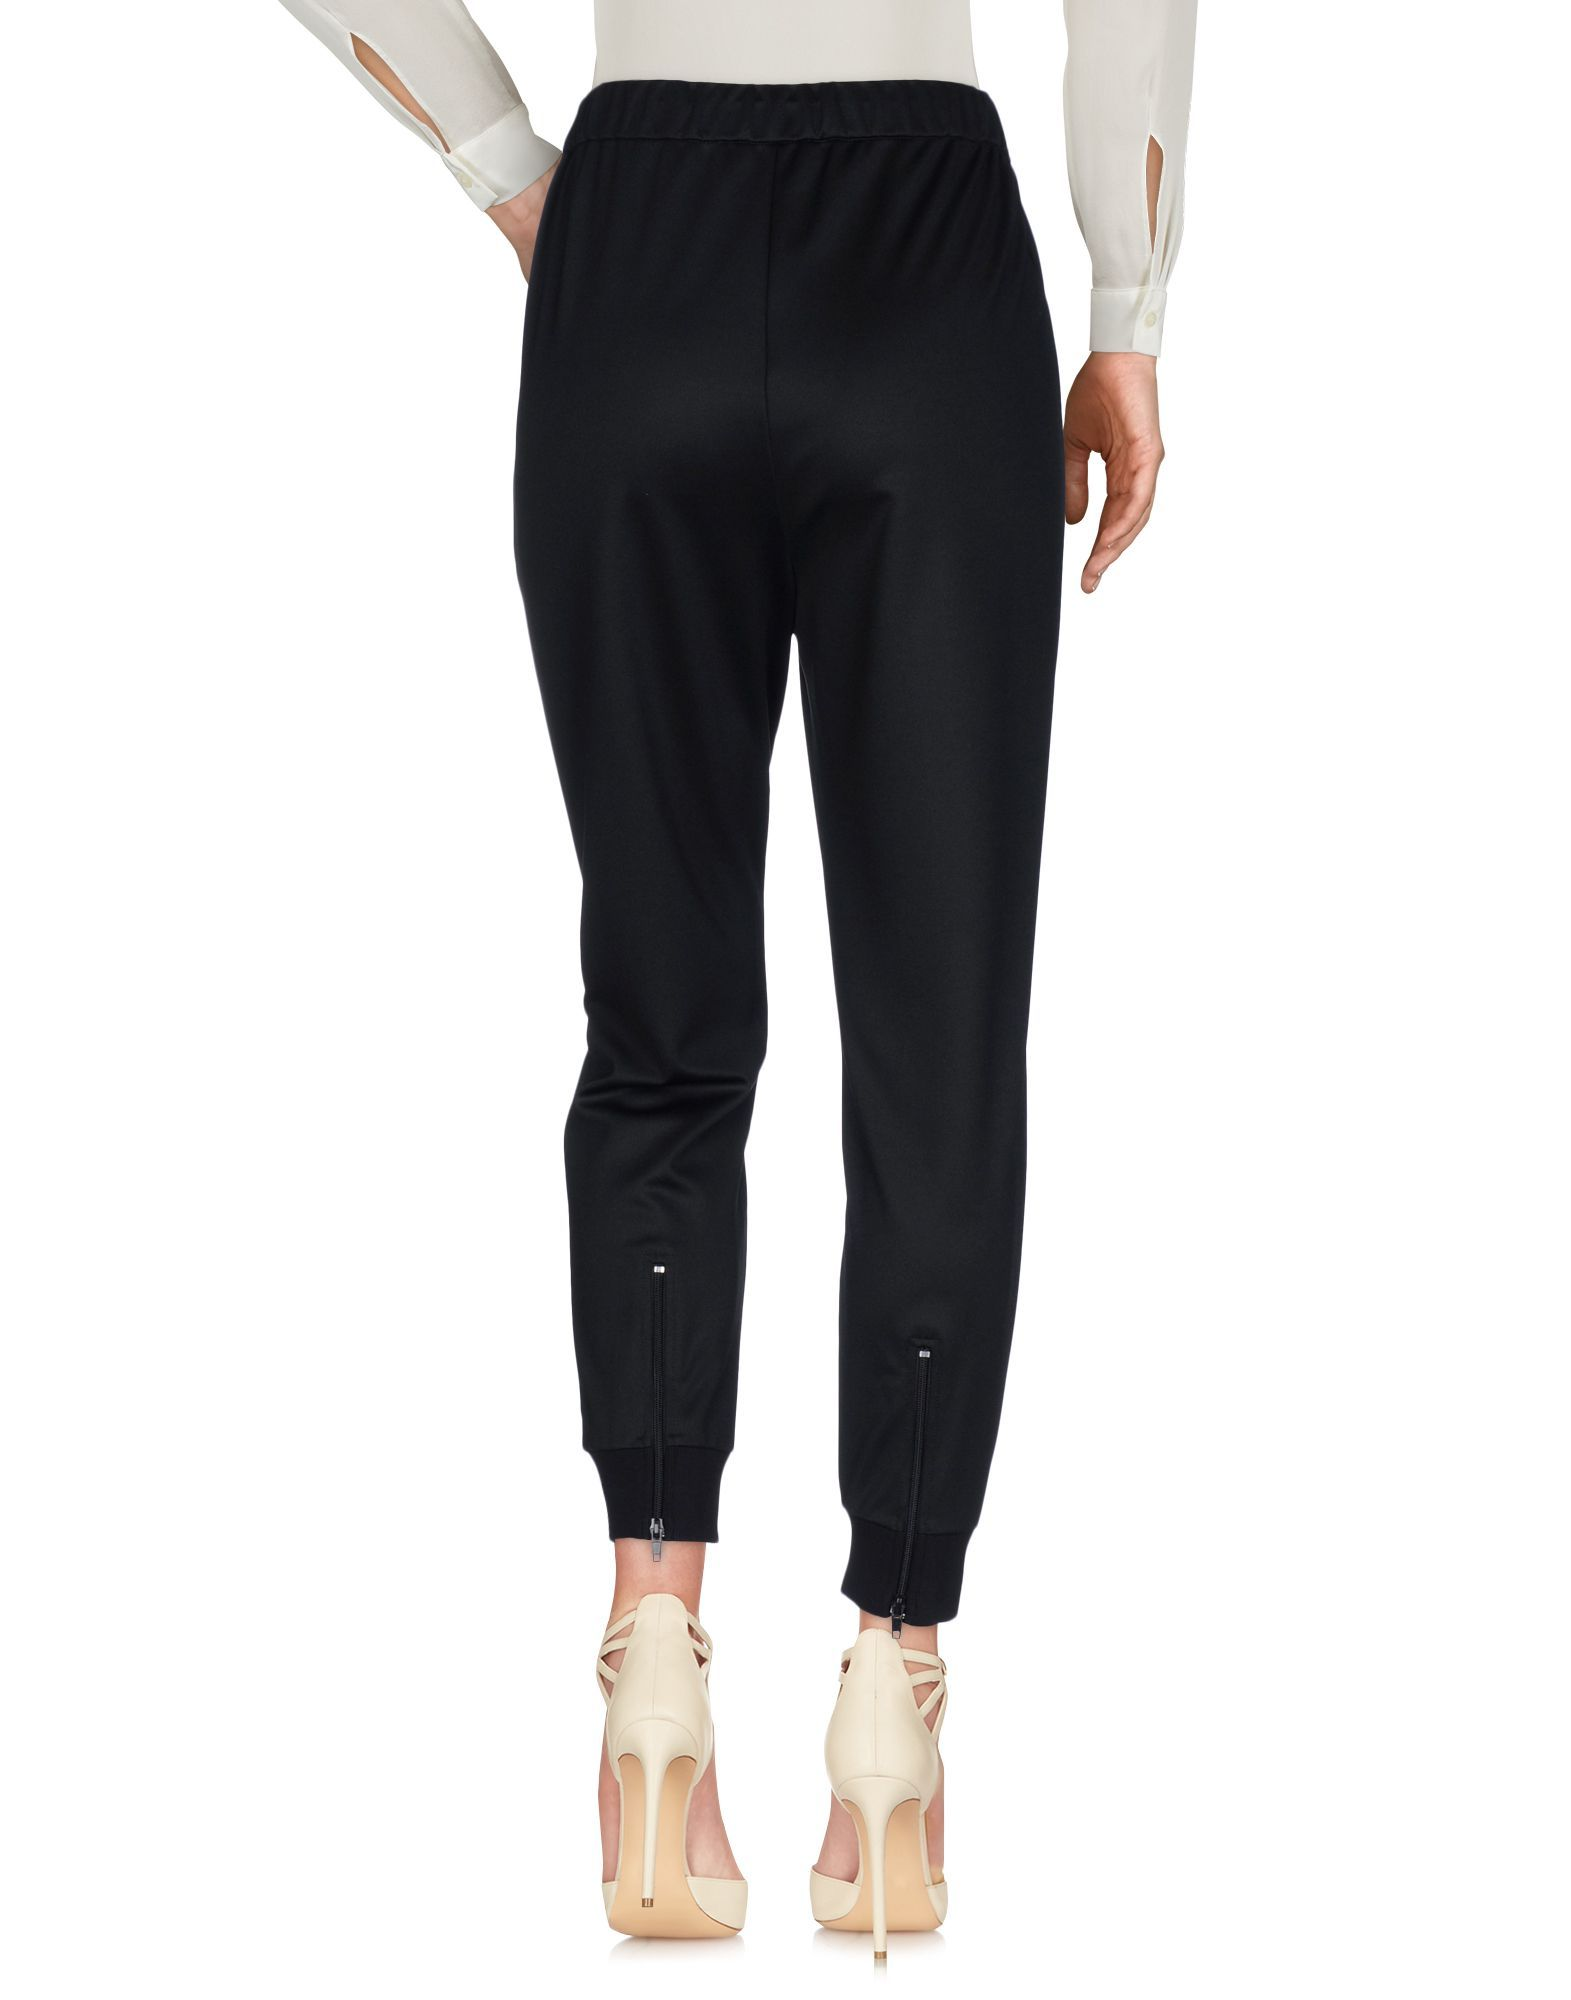 Twinset Black Tapered Leg Trousers